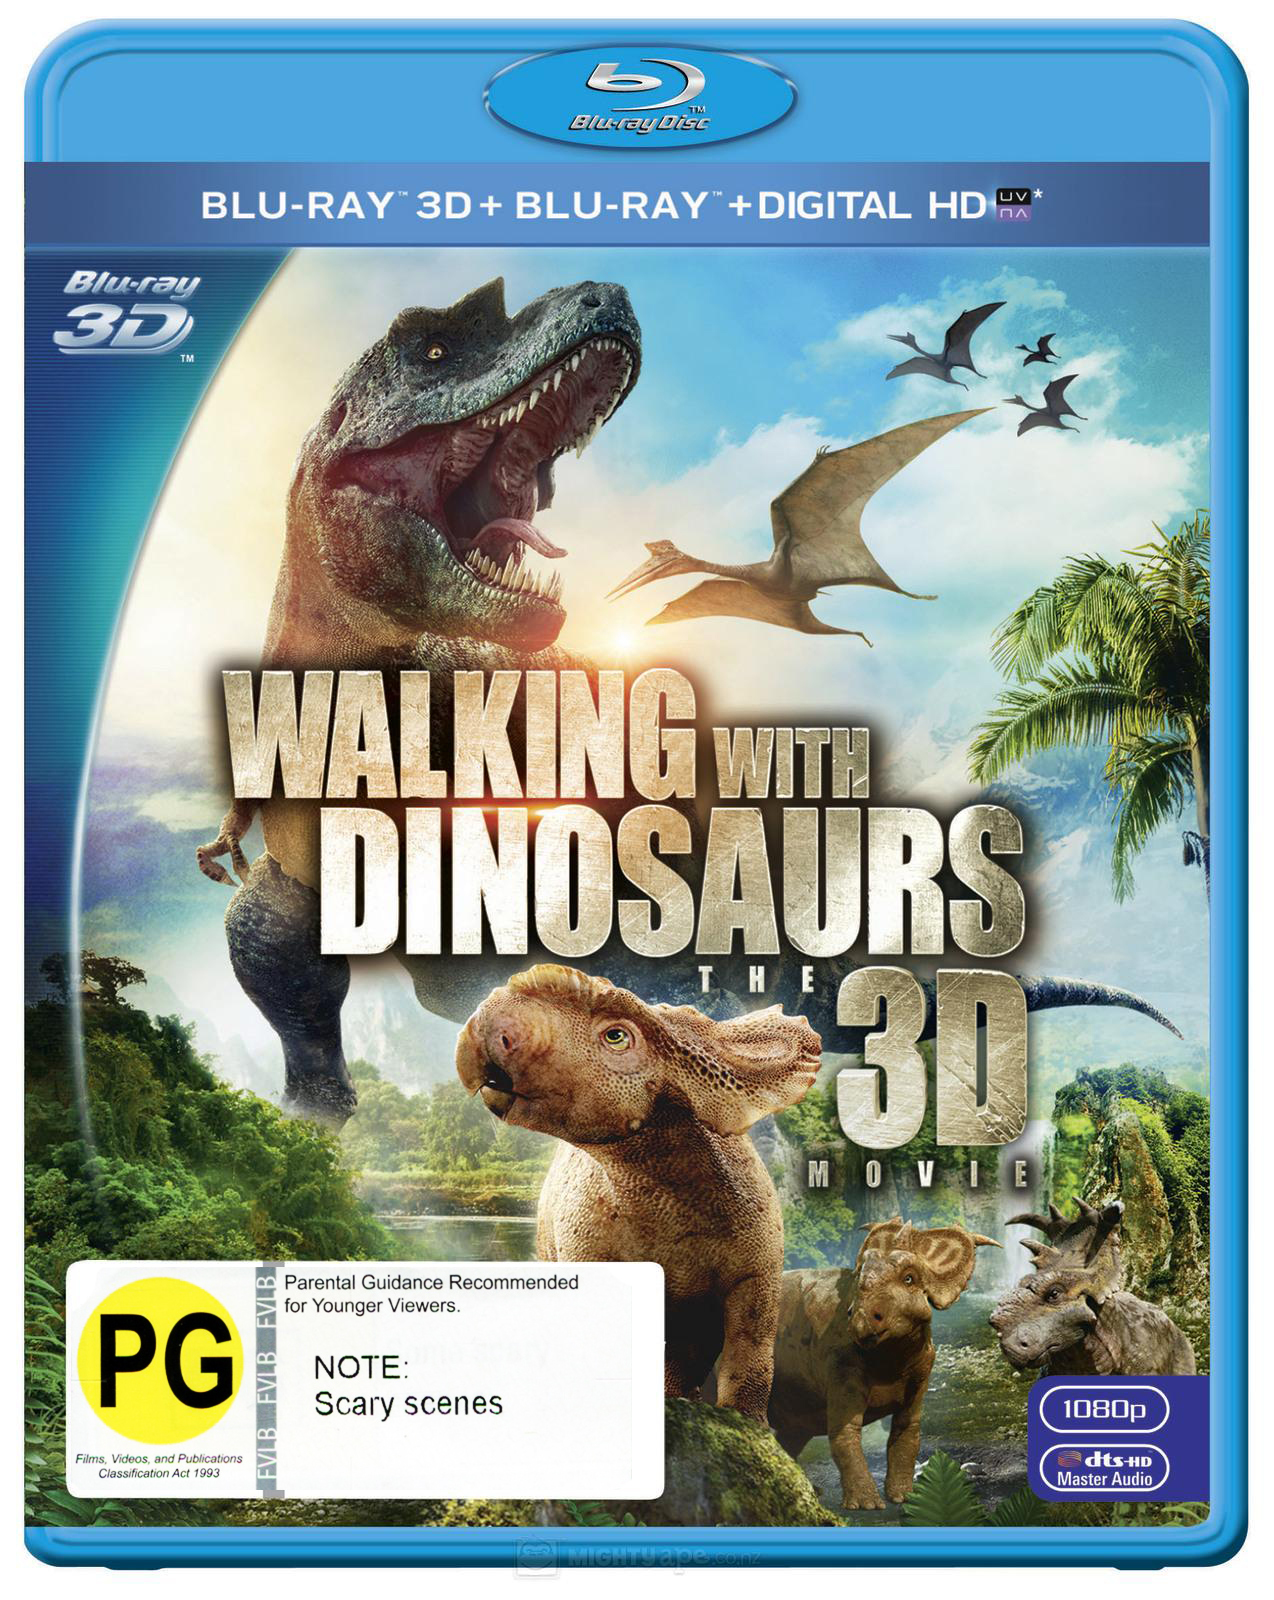 Walking with Dinosaurs on Blu-ray, 3D Blu-ray, UV image